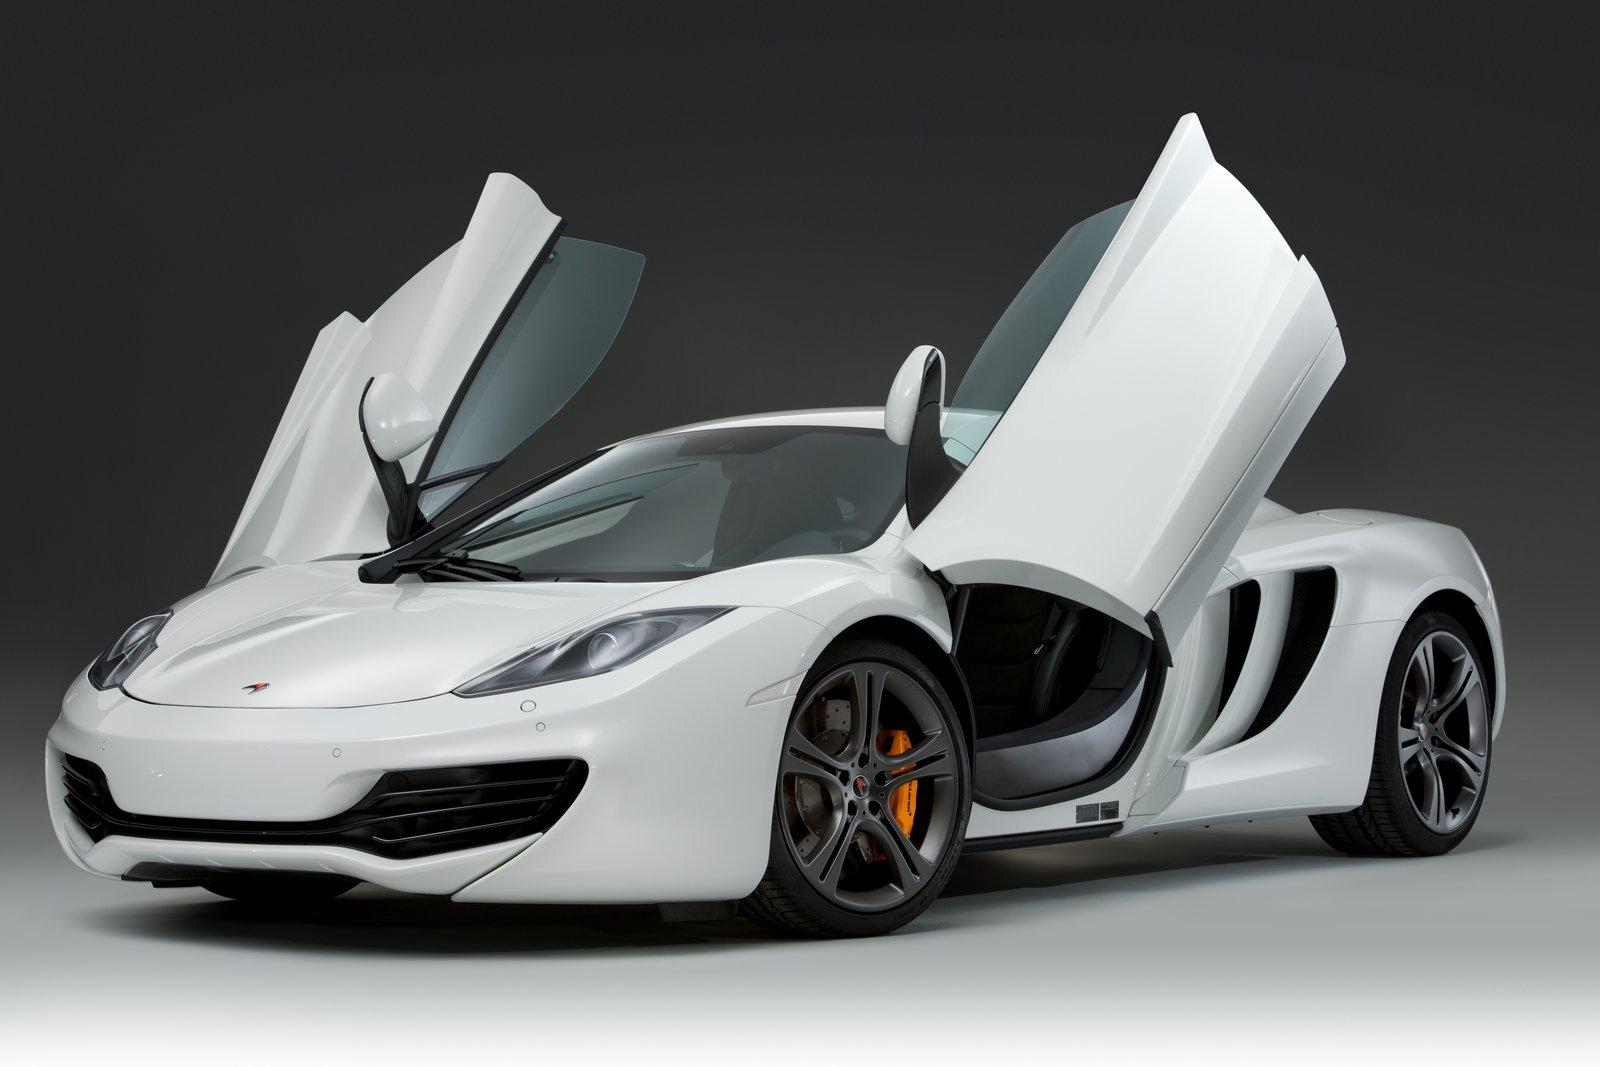 McLaren MP4 12C 22 Critiques opinion provoked MP4 12C modification for better performance